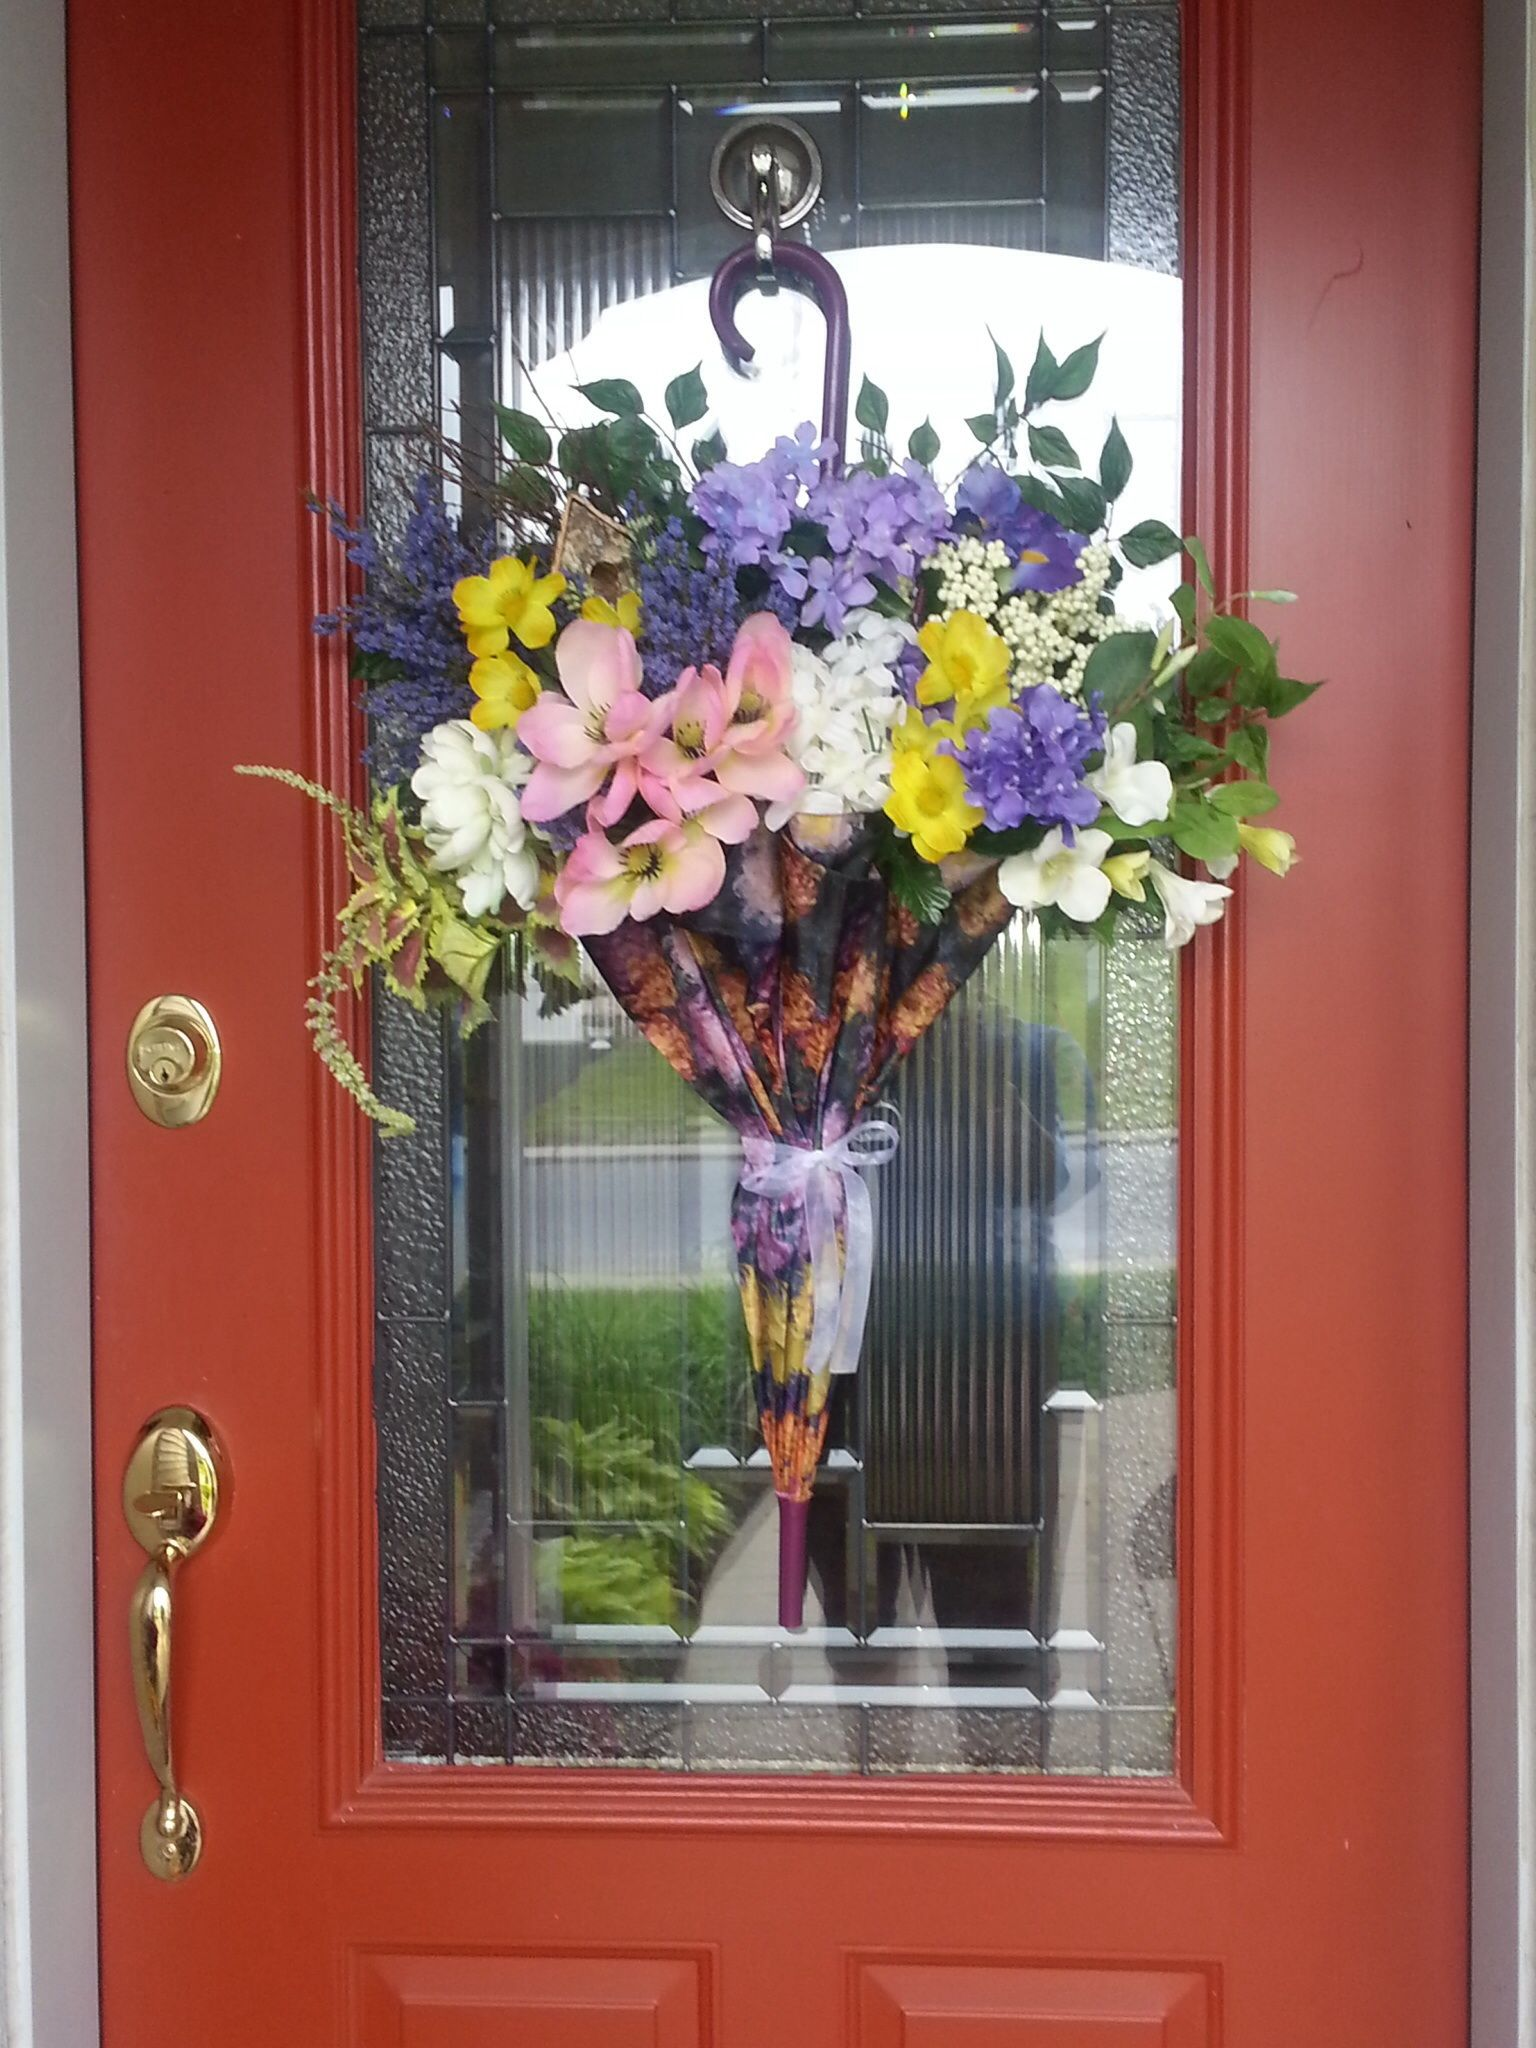 Summer front door decorations - Summer Blossoms Spill From My Colorful Umbrella Door Decoration